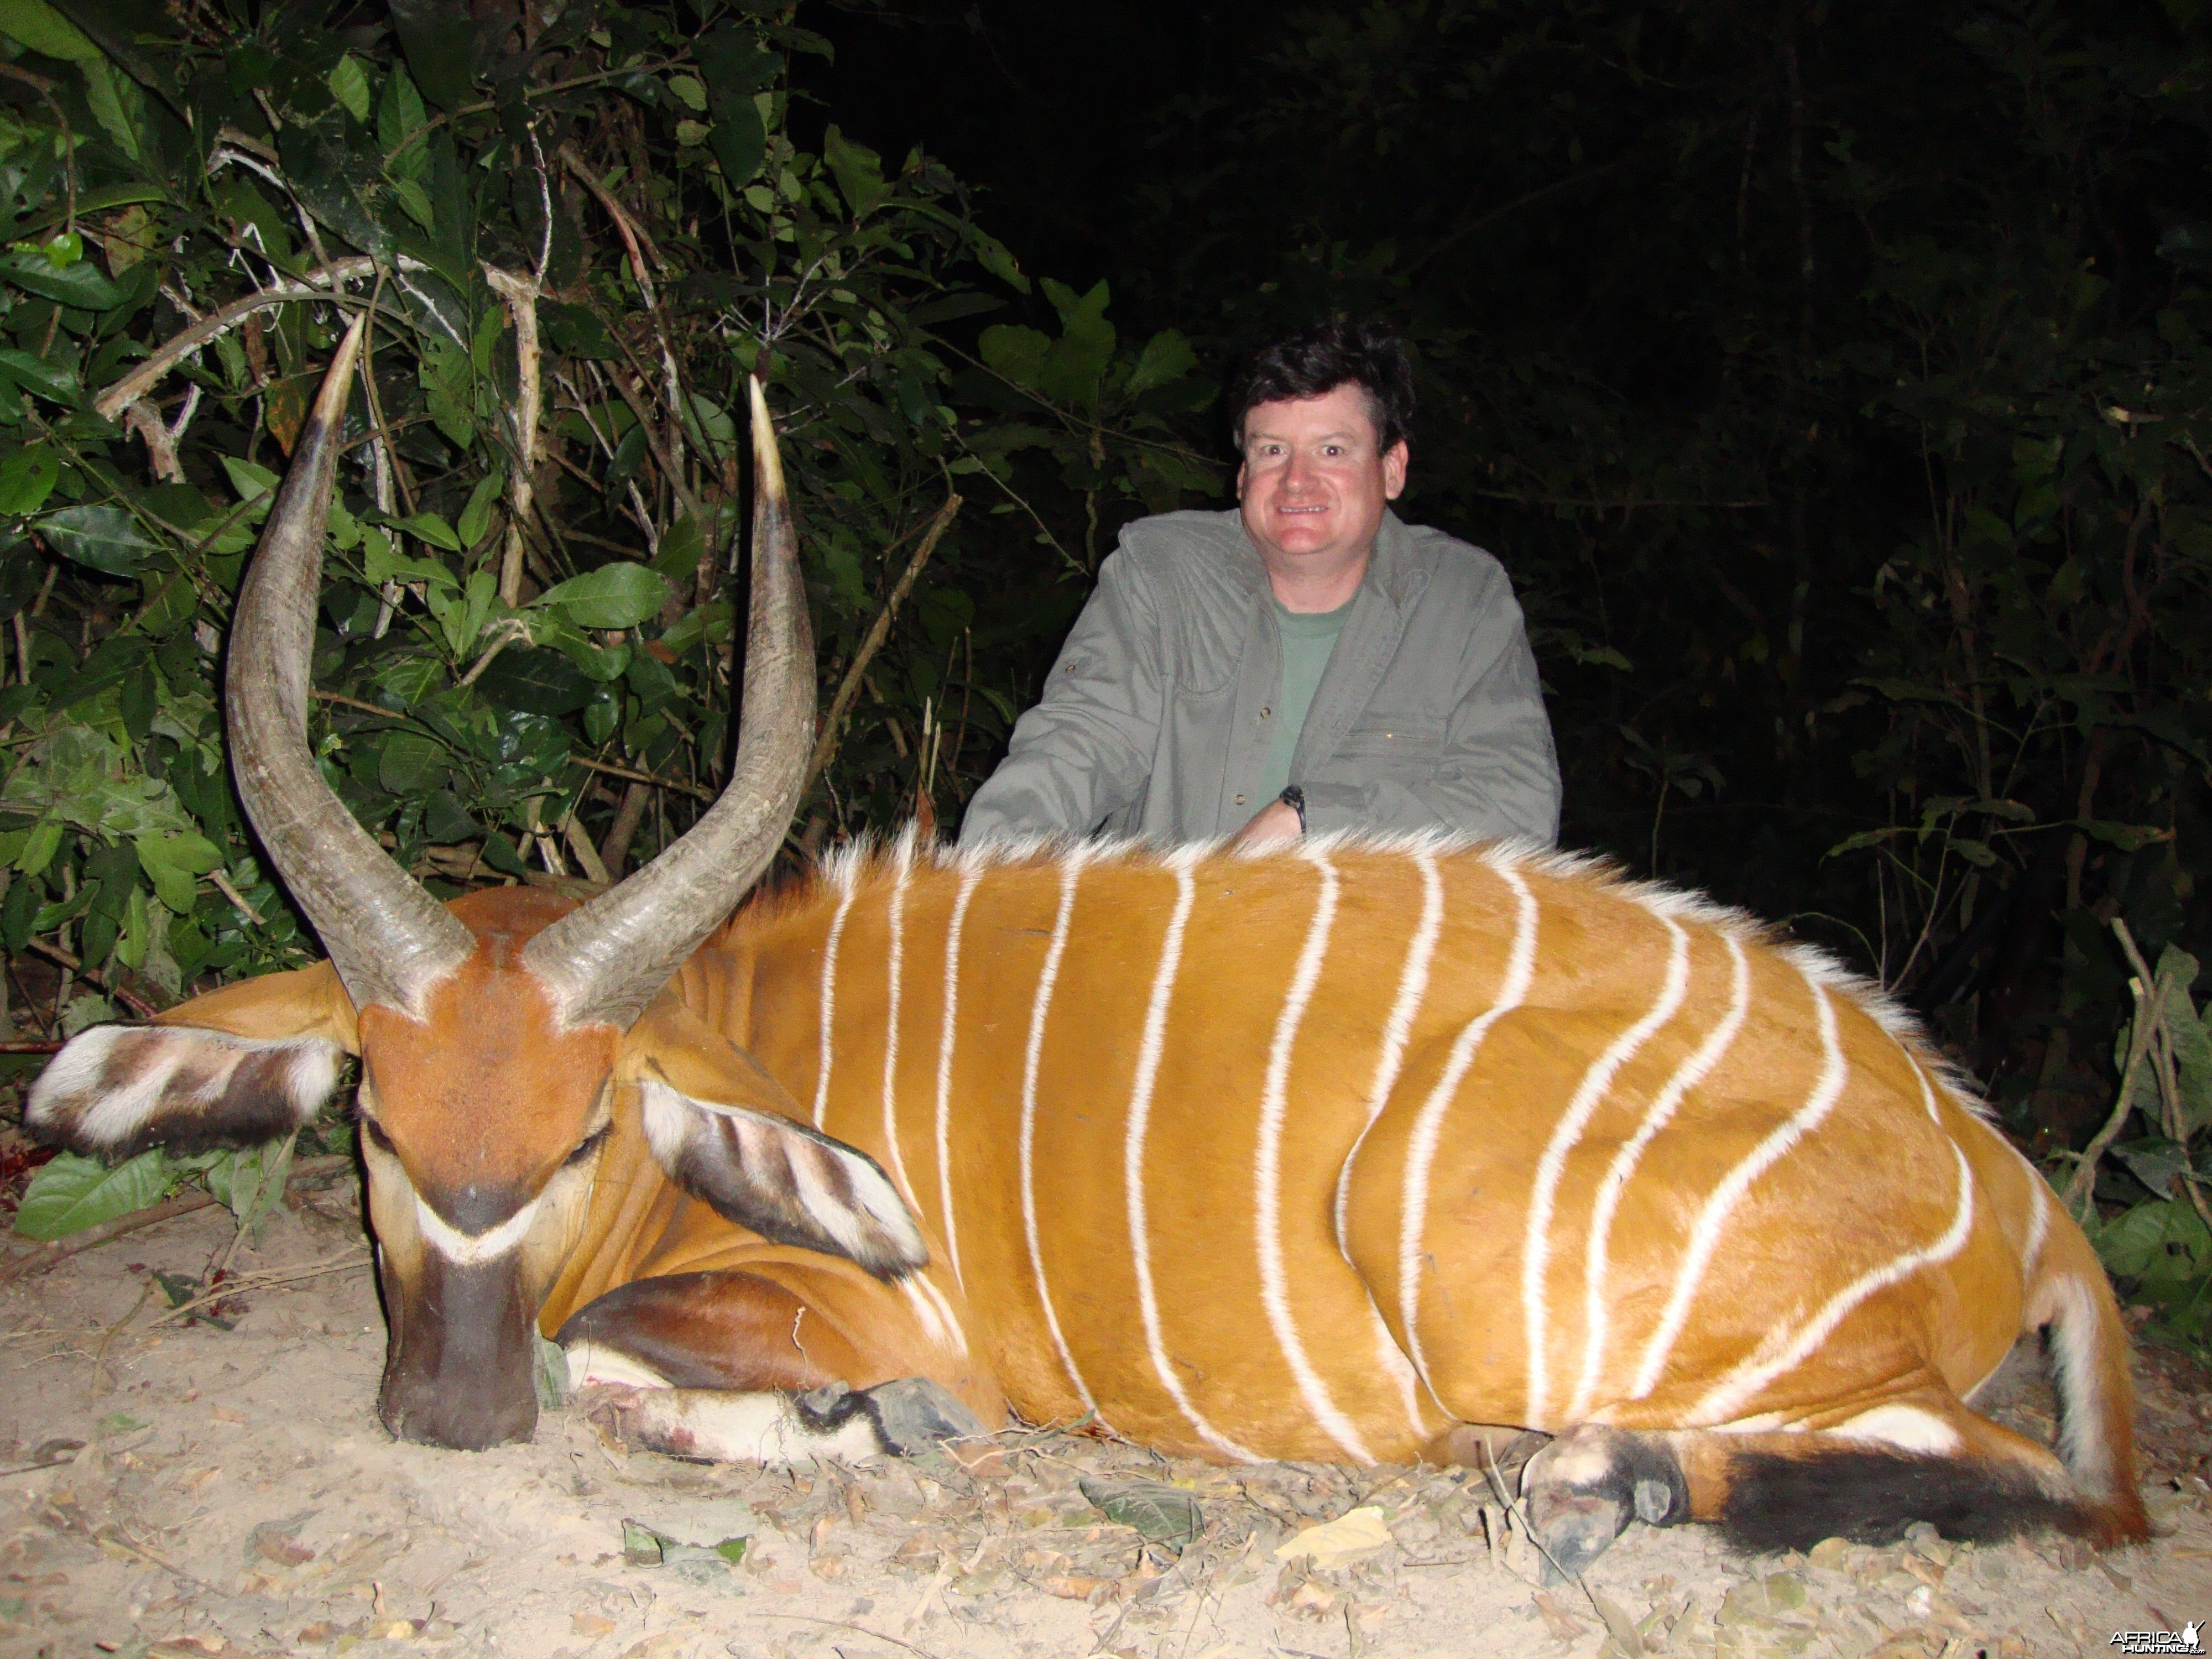 Bongo hunted in Central Africa with Club Faune